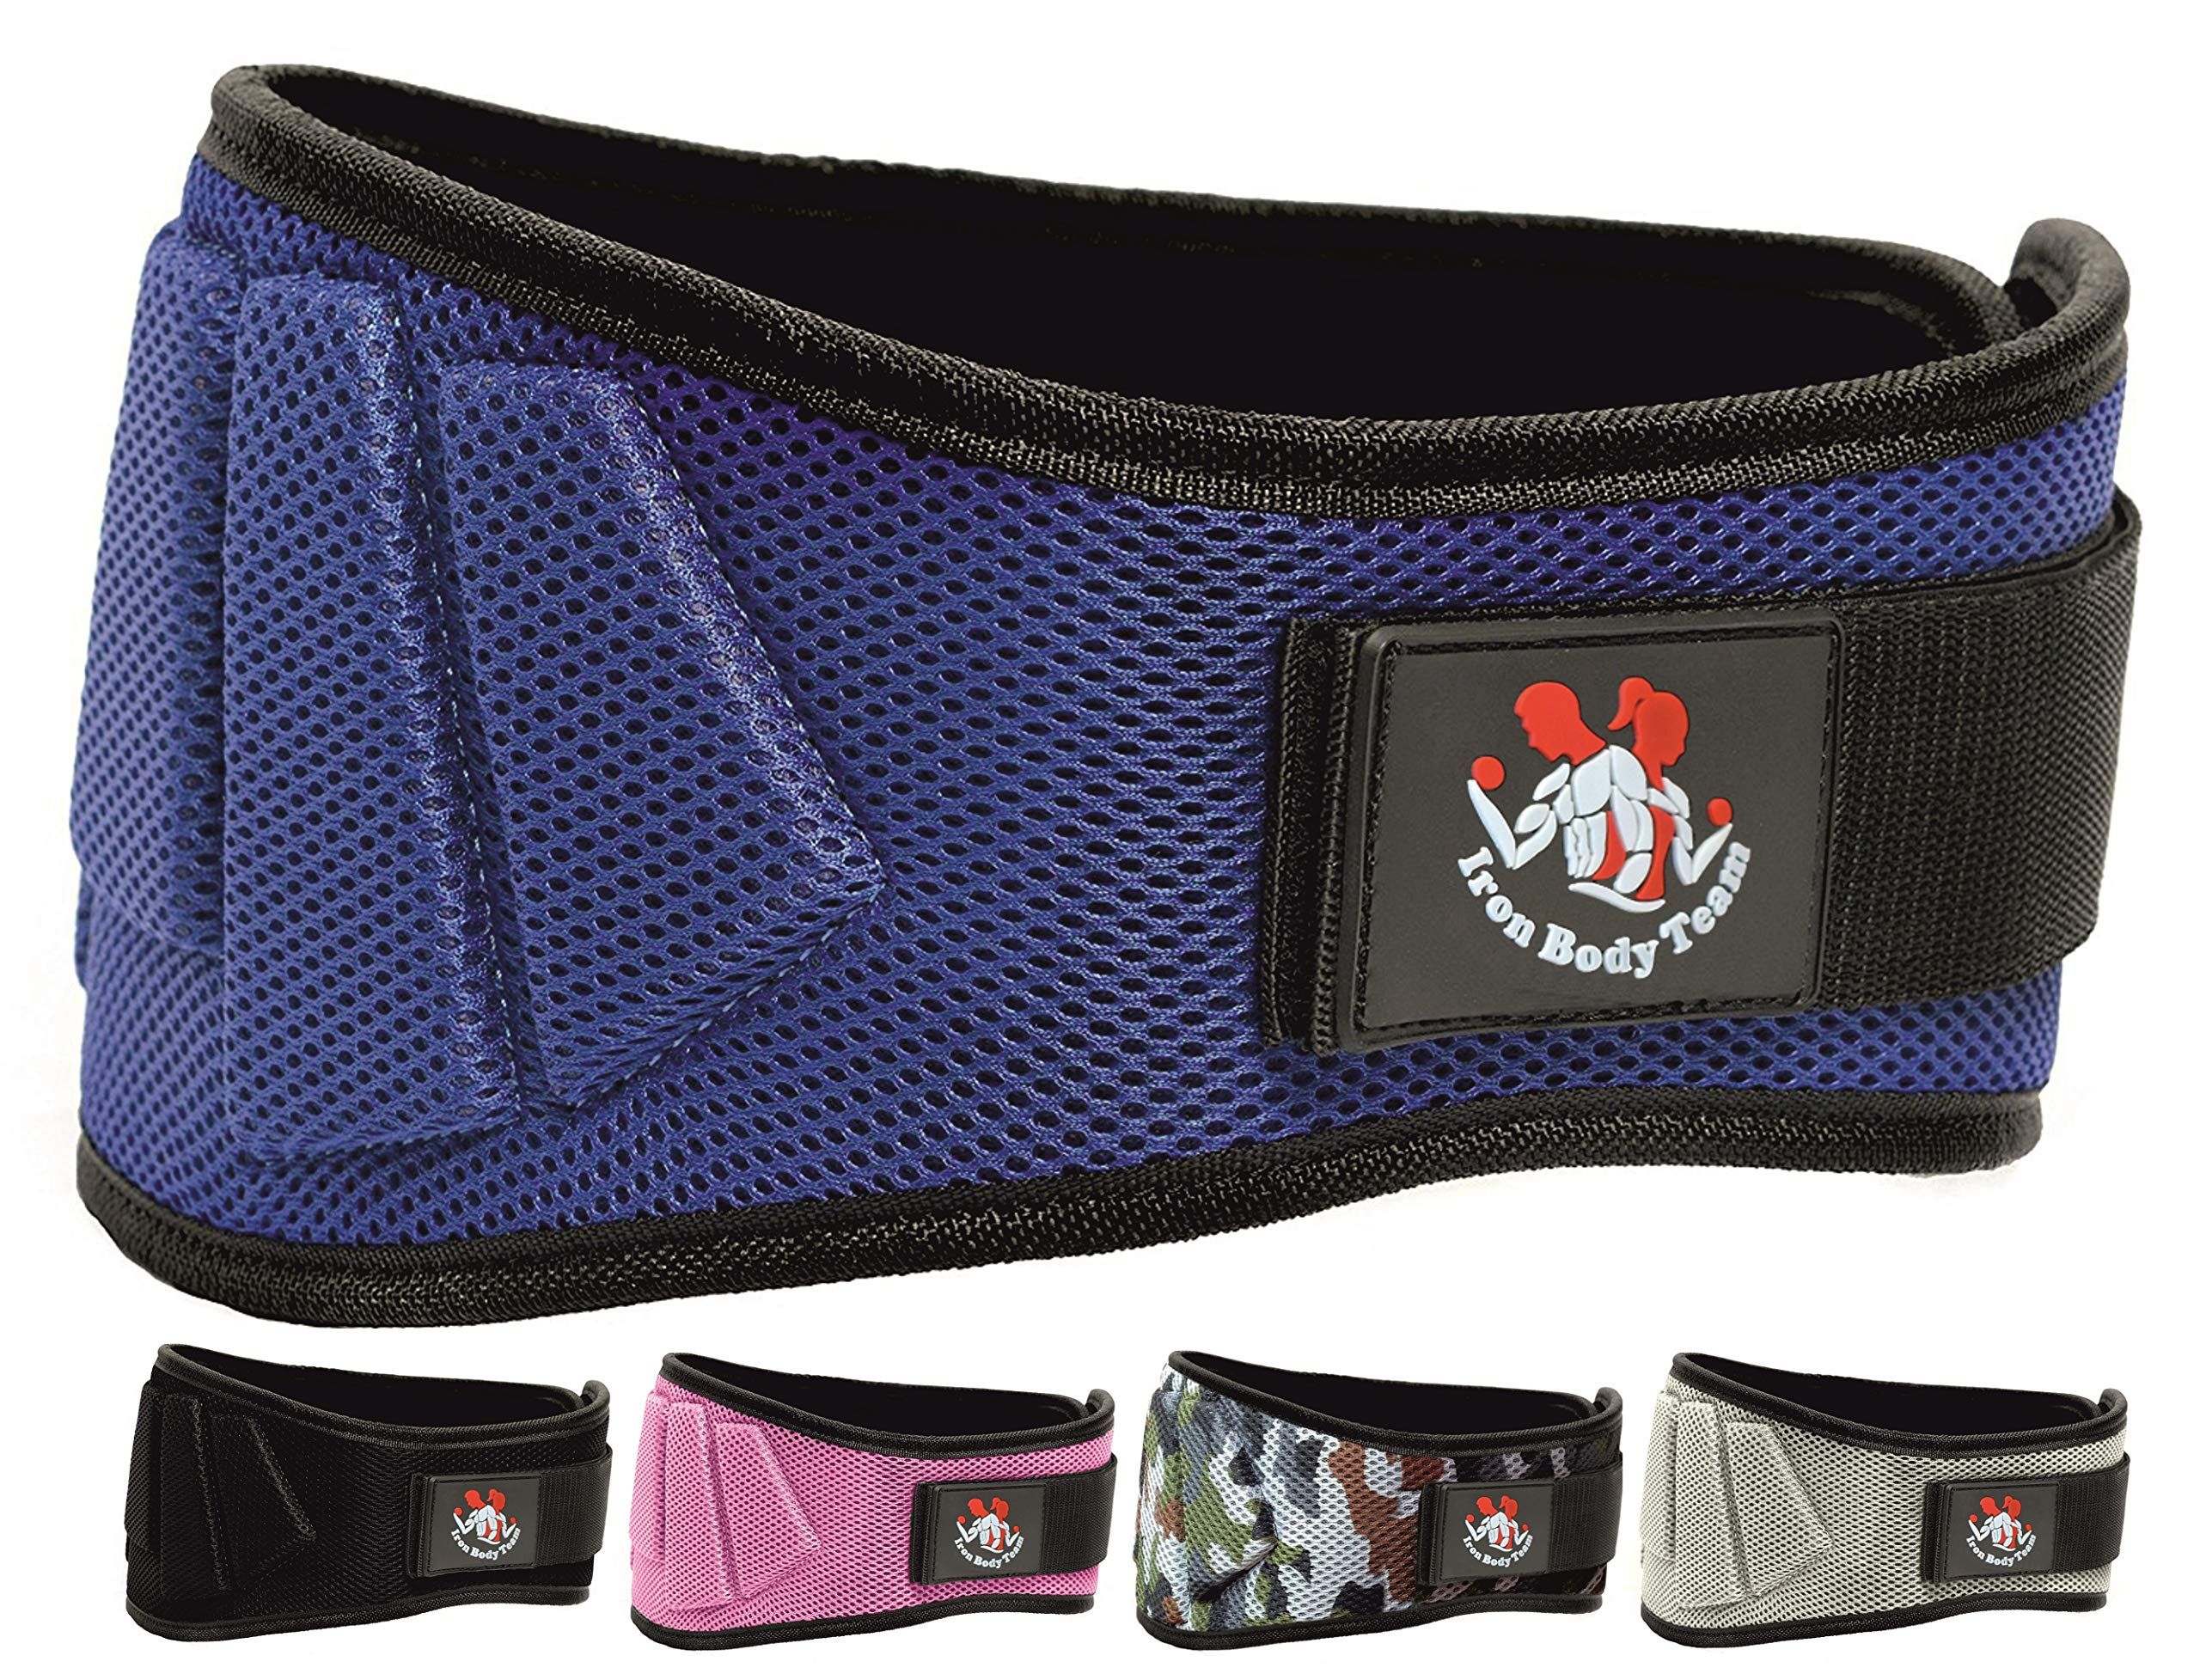 Iron Body Team Fully Adjustable Weightlifting Belt | Thick Lower Back & Core 6 inch Support for Men & Women | (Blue, XS)